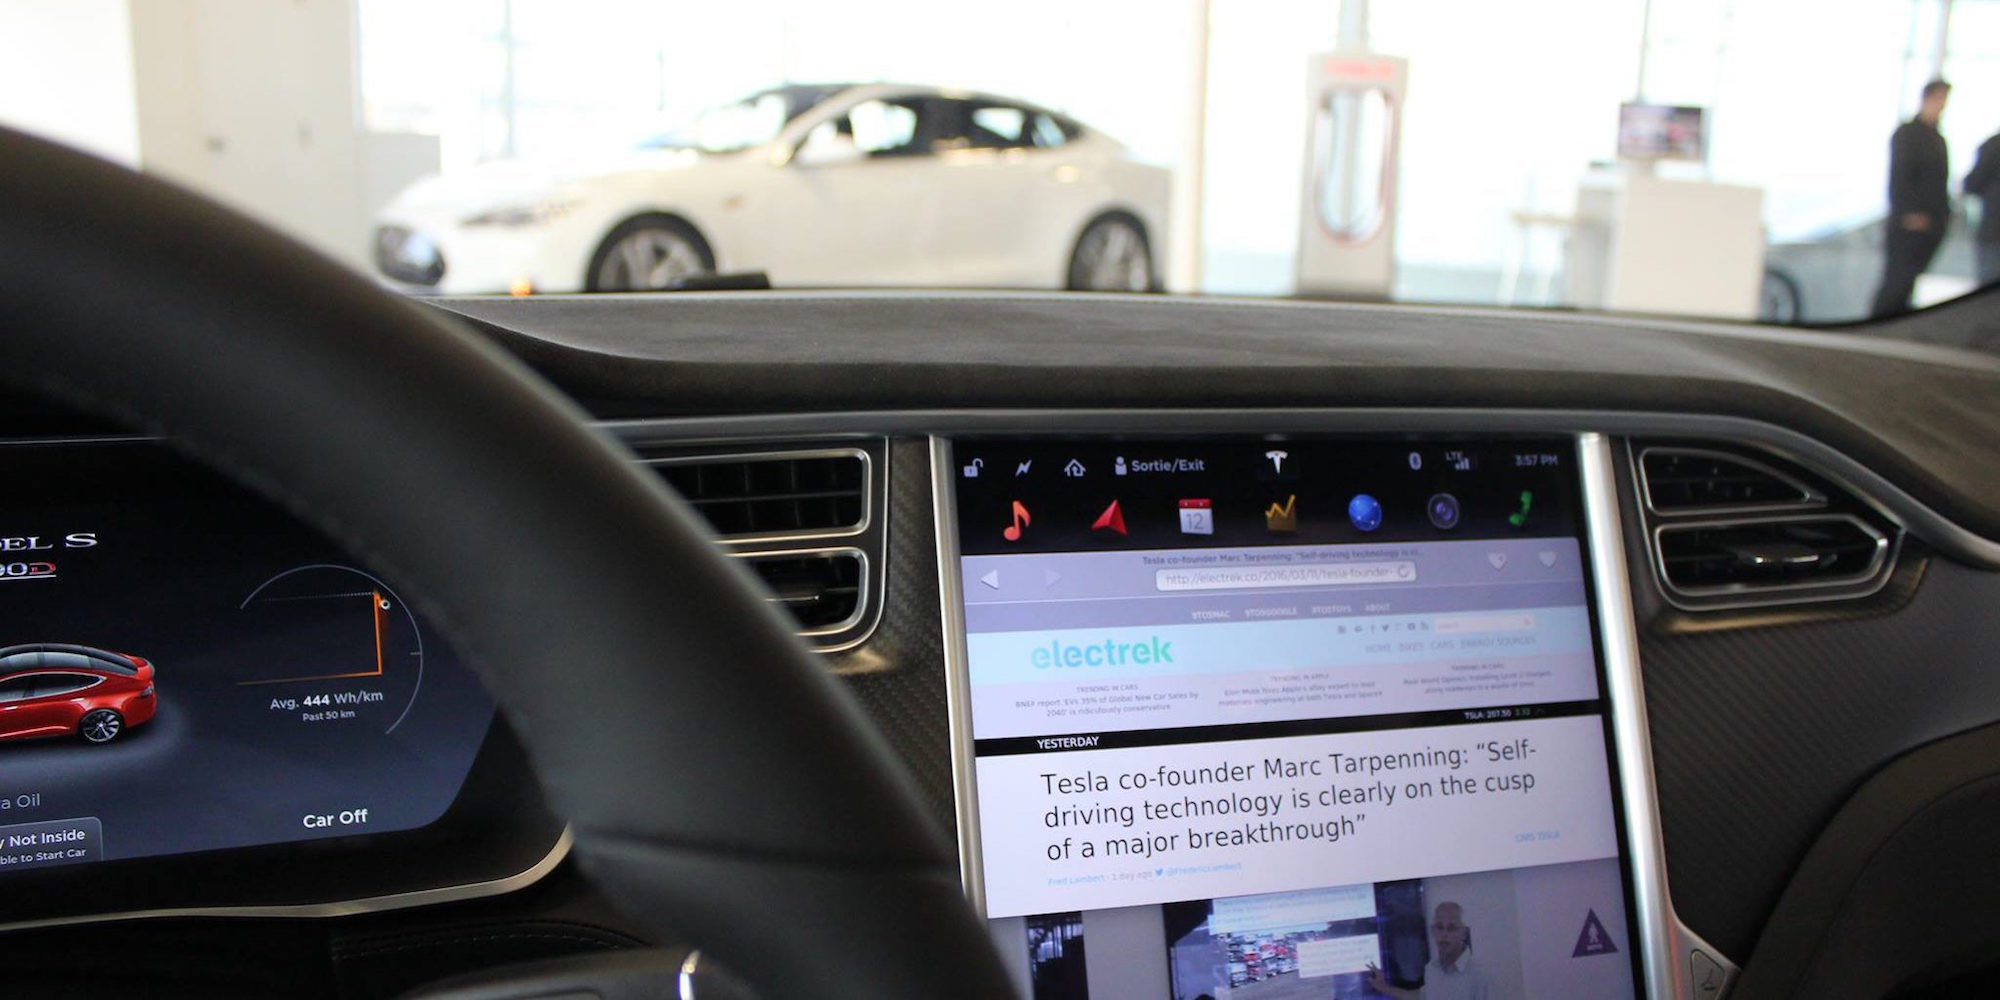 This week's top stories: Tesla Model 3 deliveries continue to increase, VW bets big on EV, and more